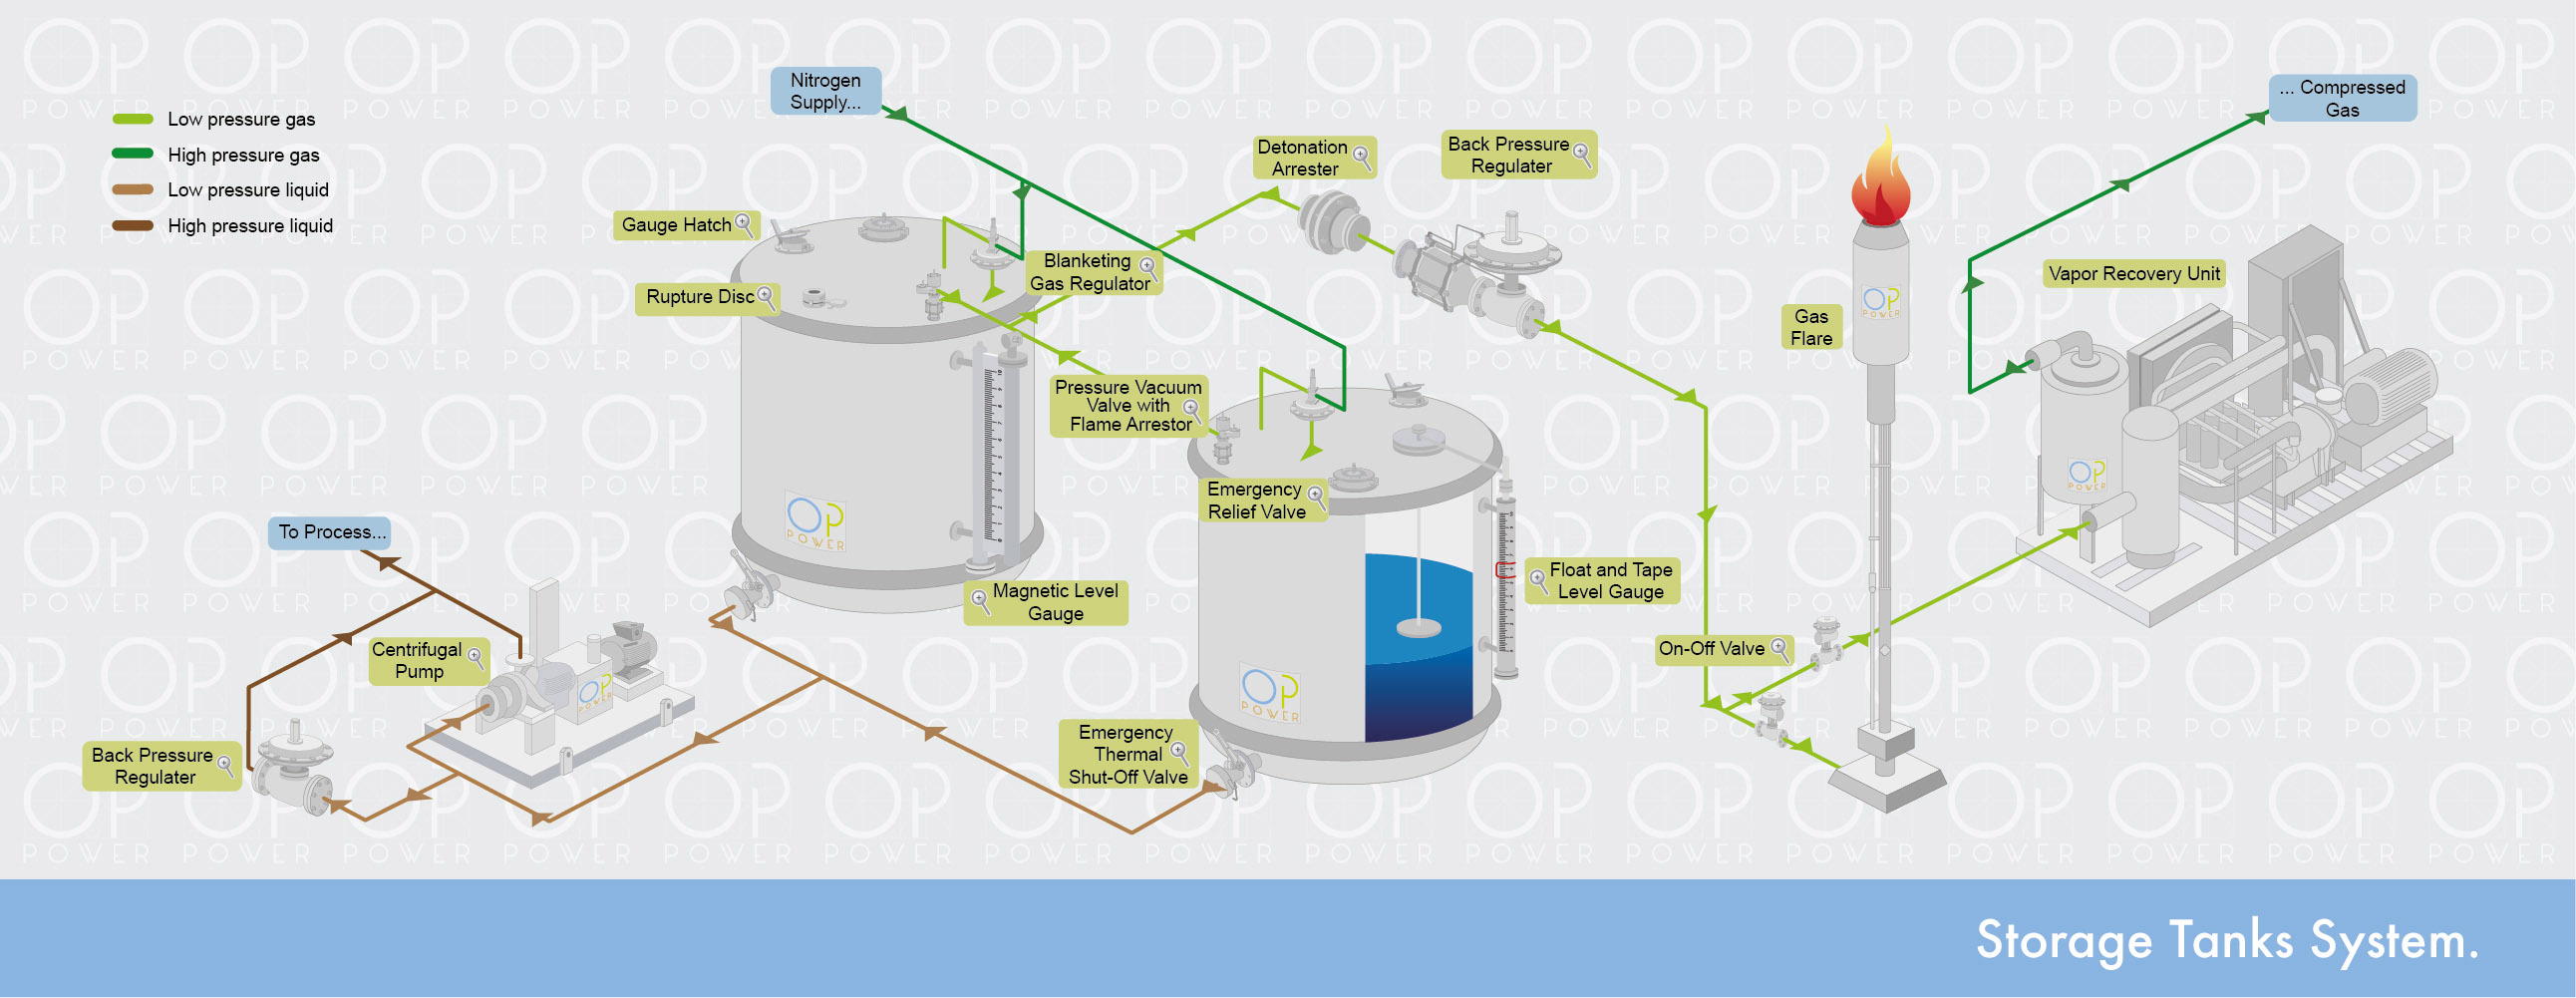 Storage Tanks System